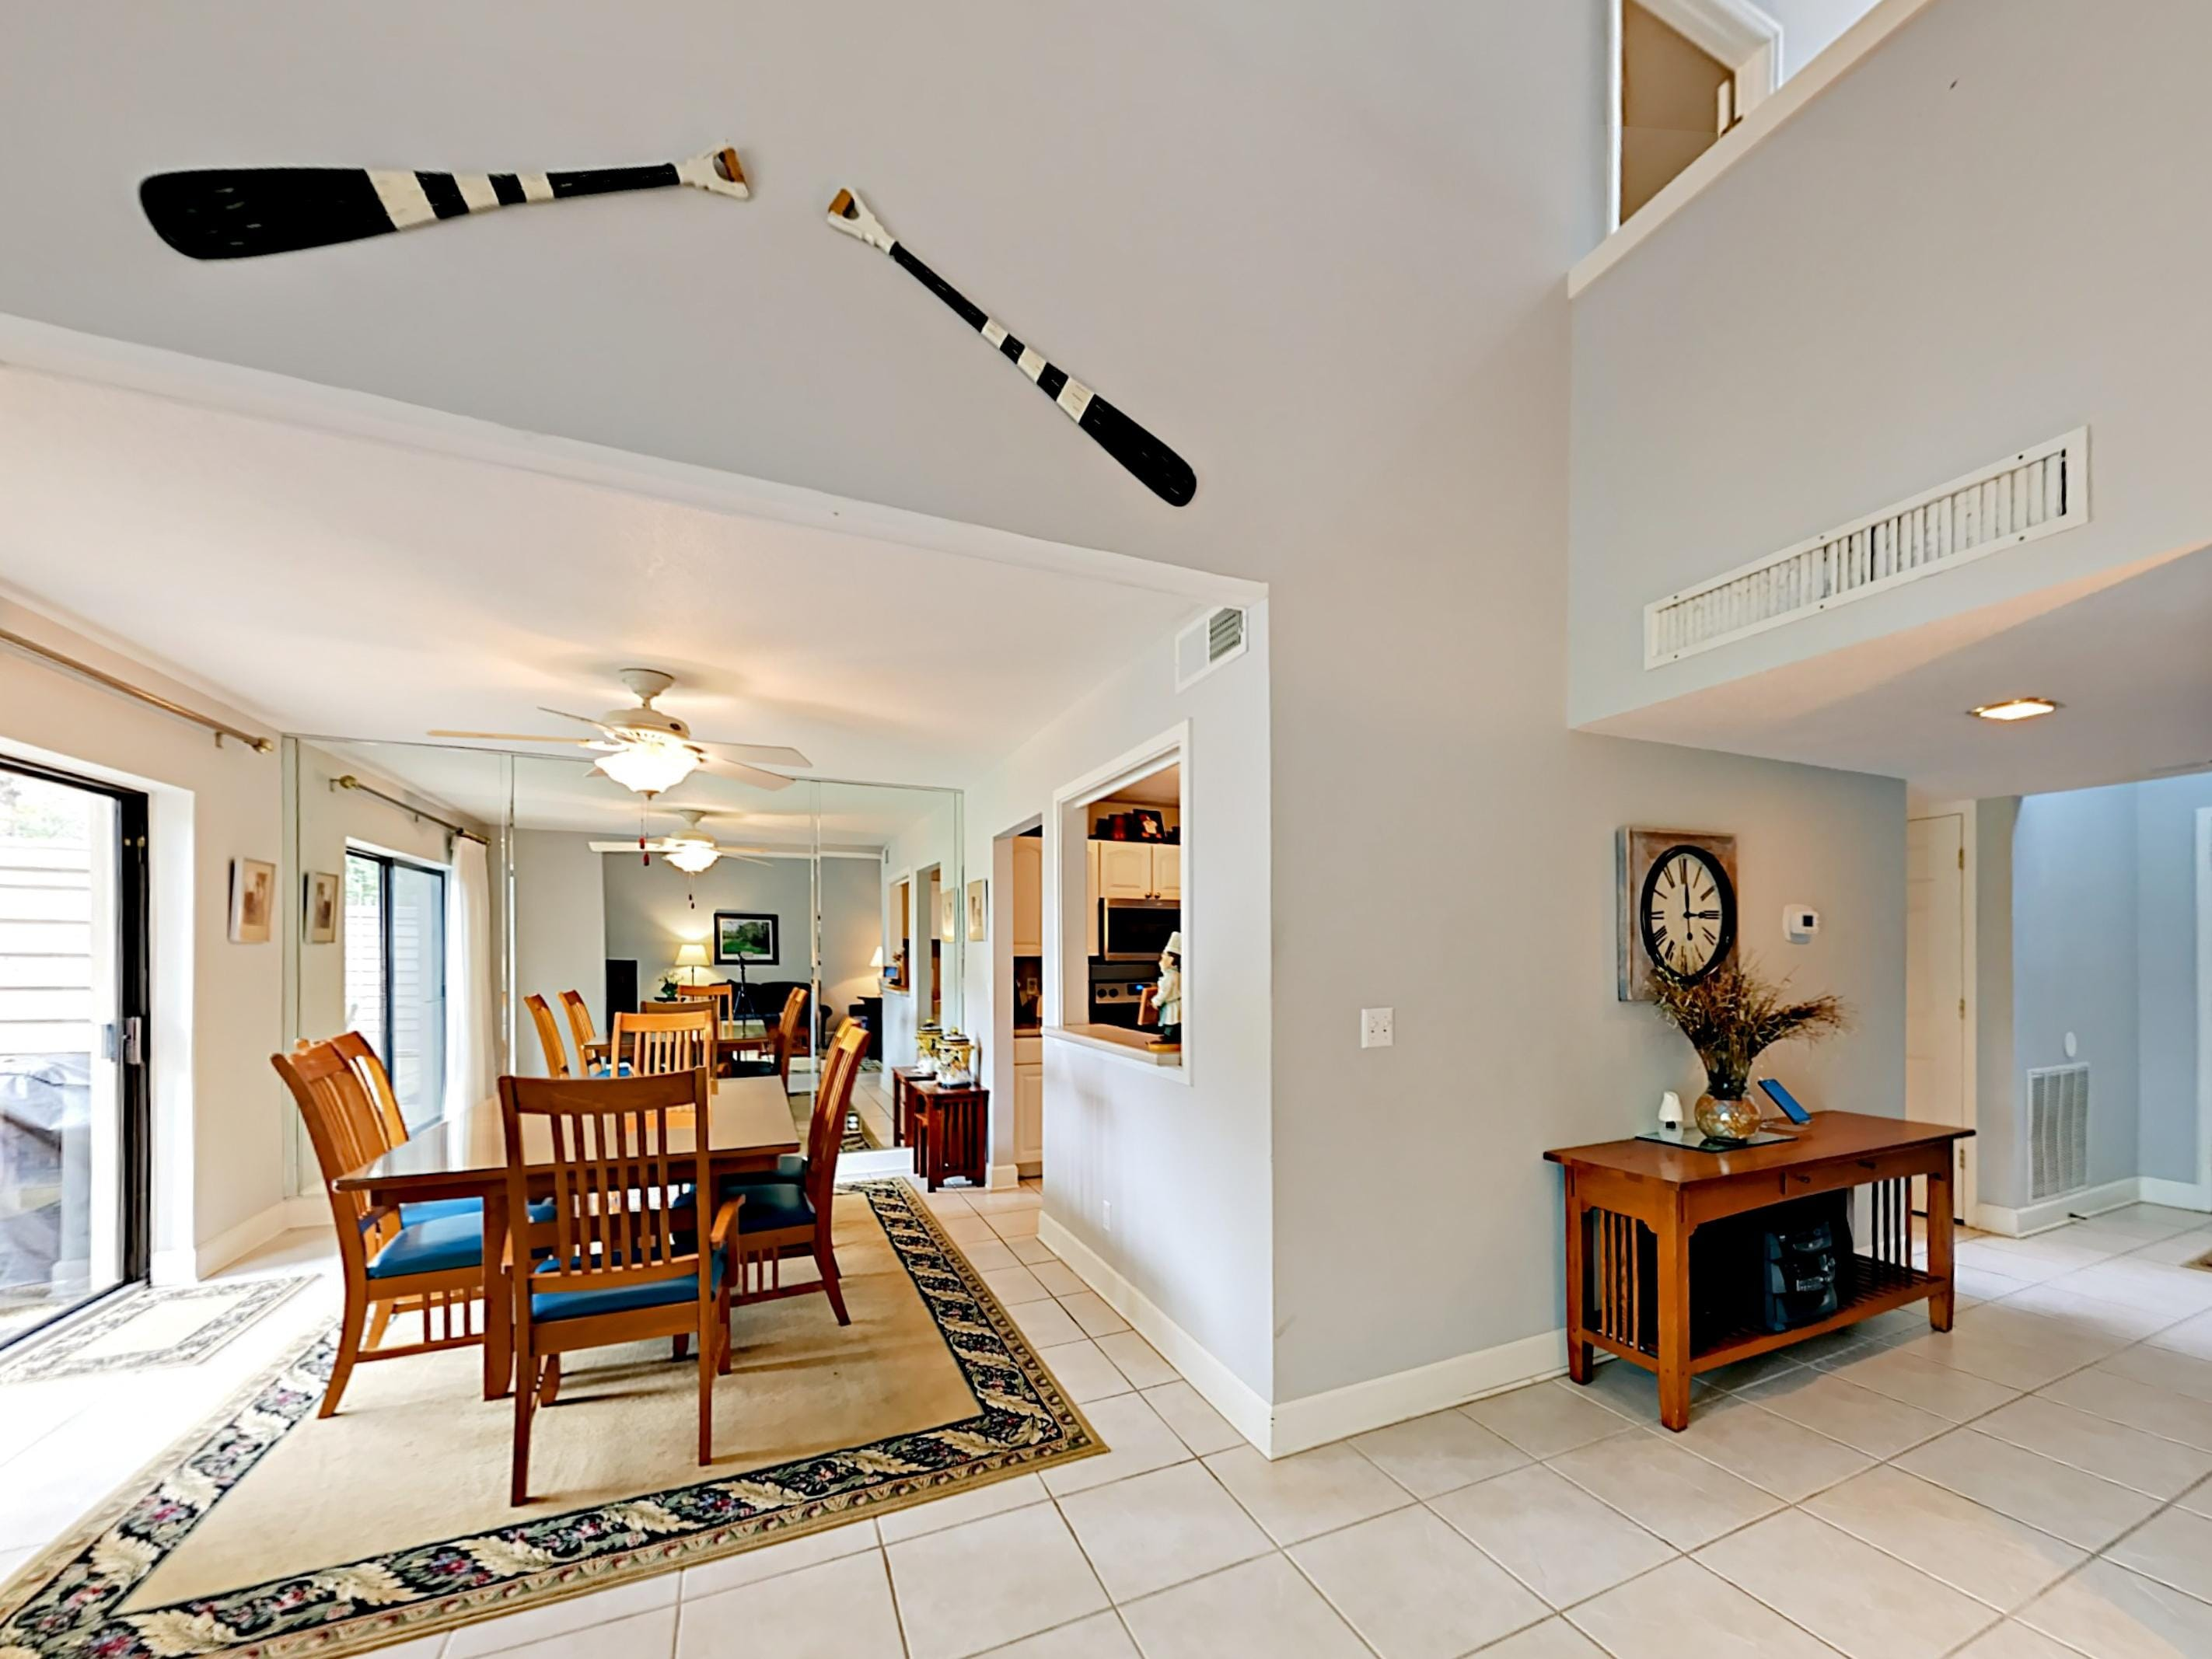 Welcome to Hilton Head Island! The open kitchen and dining space offer a great flow for entertaining.